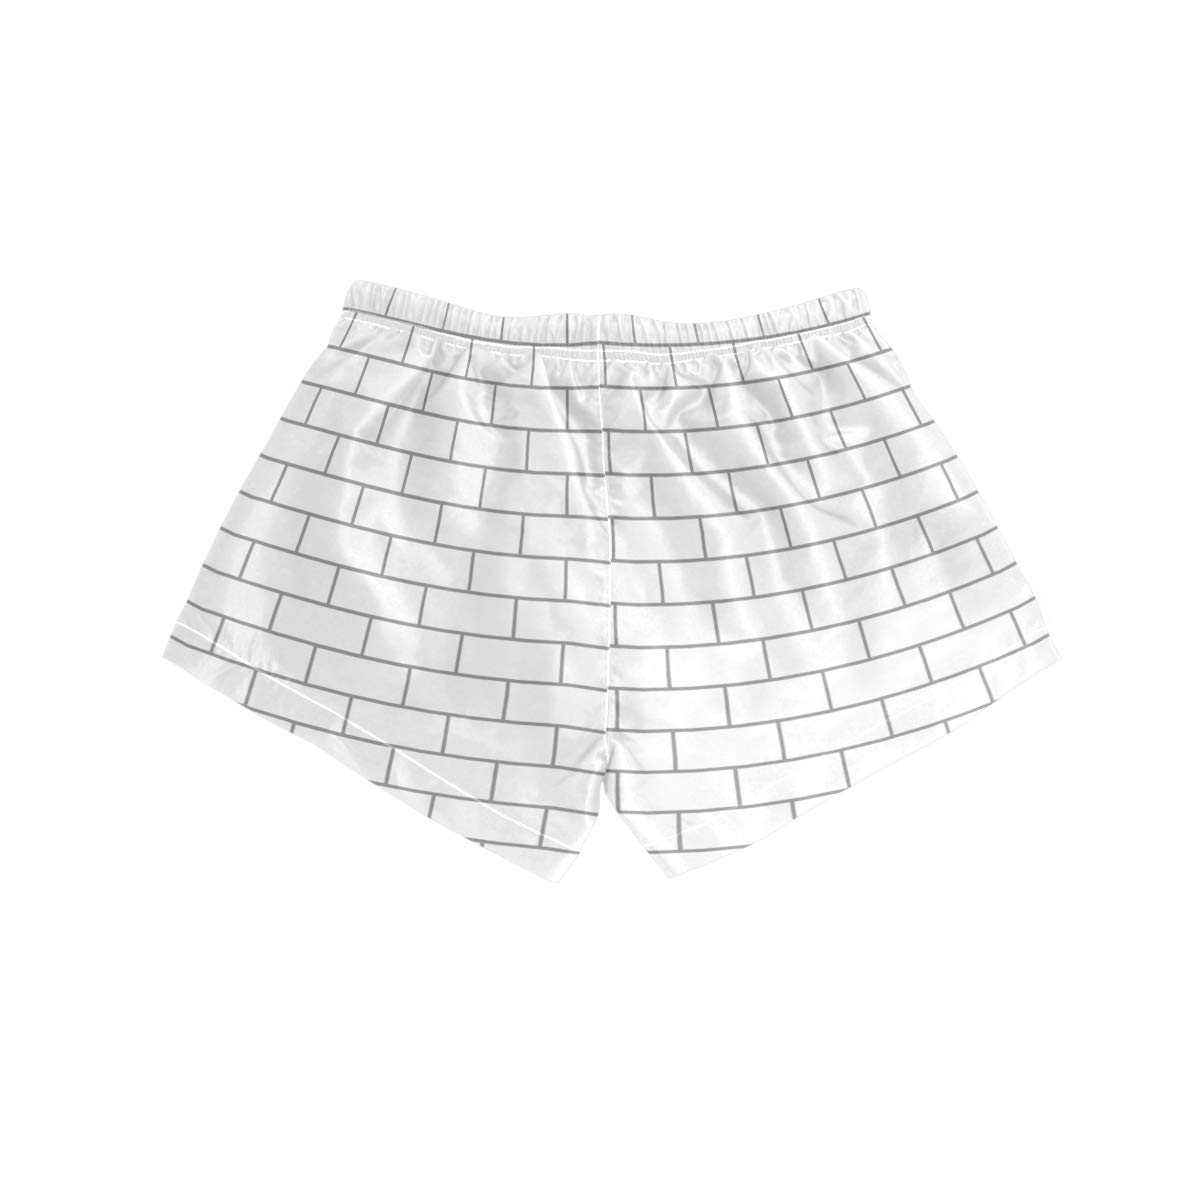 NWTSPY White Brick Systems Home Builders Womens Sport Beach Swim Shorts Board Shorts Swimsuit with Mesh Lining